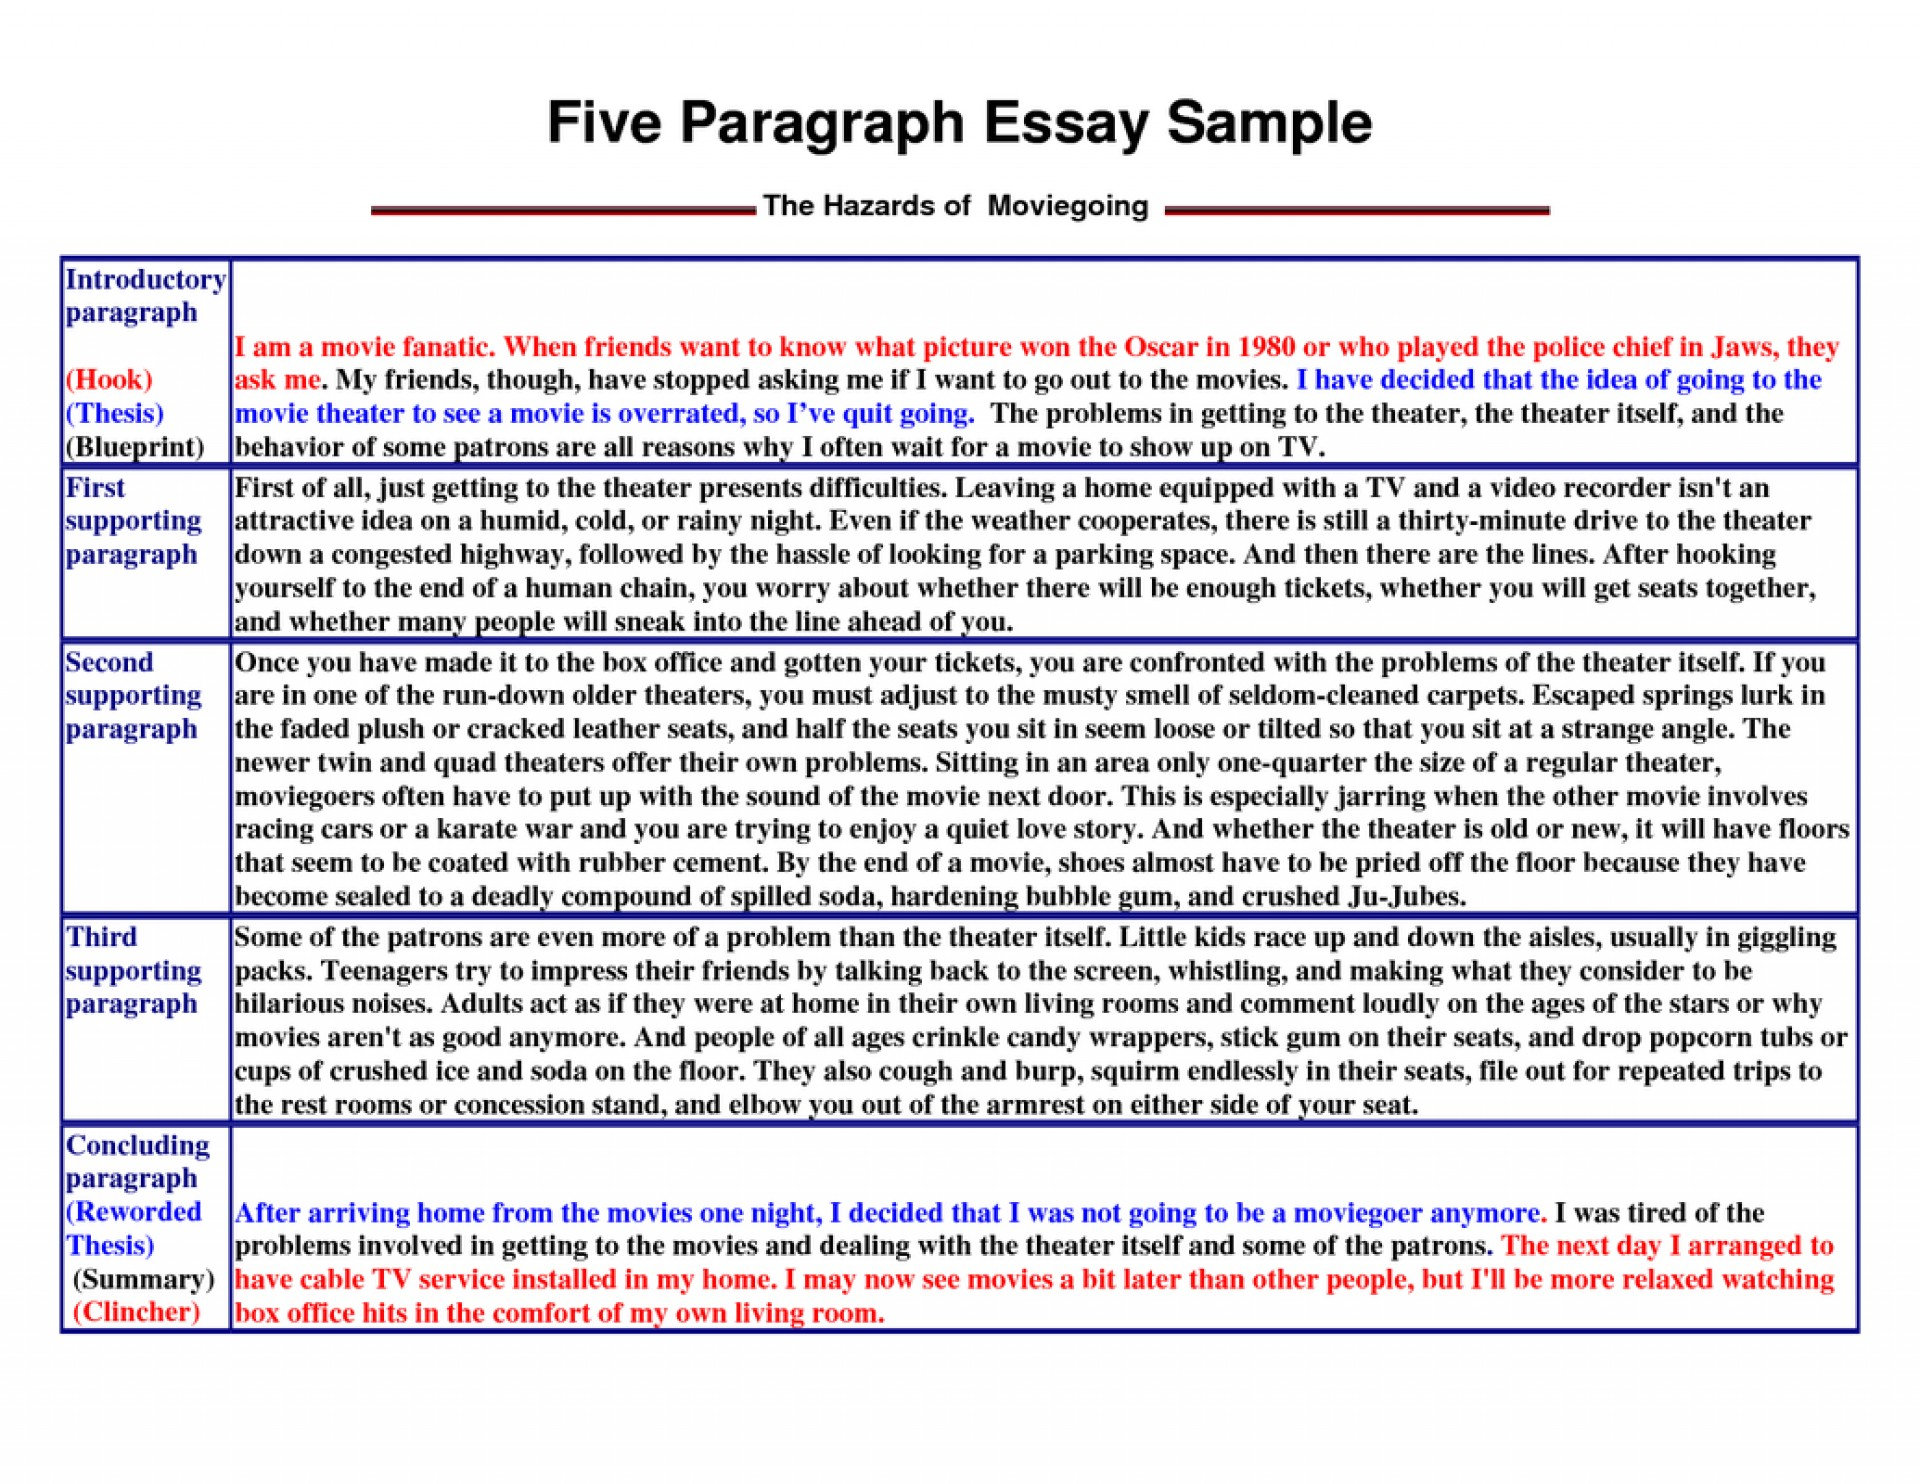 003 Essay Example How To Write An Introduction Paragraph For 7897635 Orig Best About Yourself A Book Informative 1920